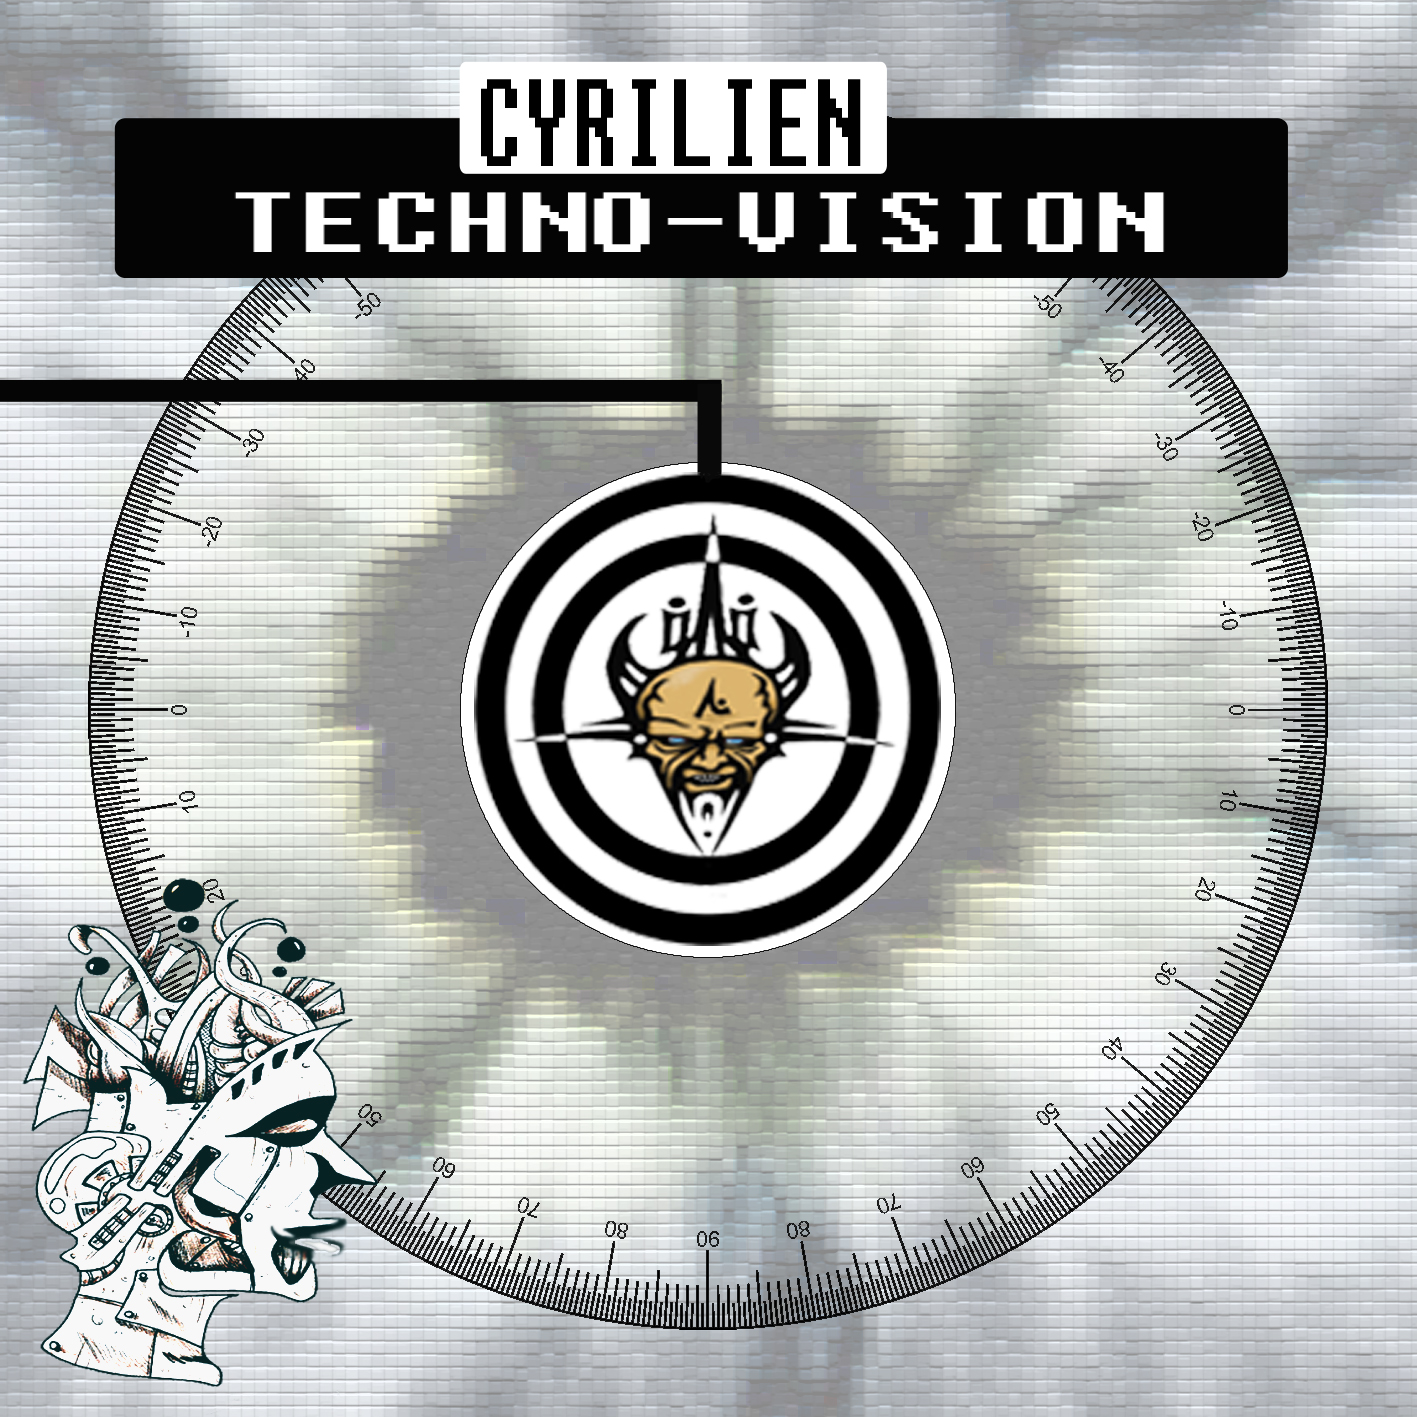 MP3CCREATDF007 - CORE CREATOR DIGIFILES - CYRILIEN - Vision Ret